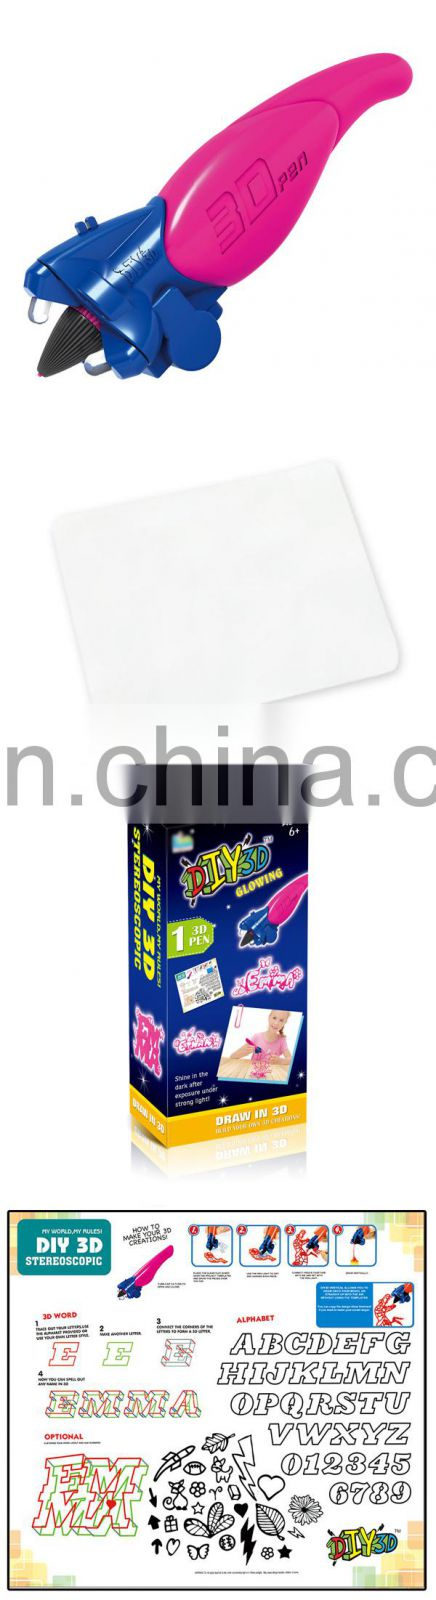 Kids hot selling glow in the dark diy mold intellectual toys 3d pen